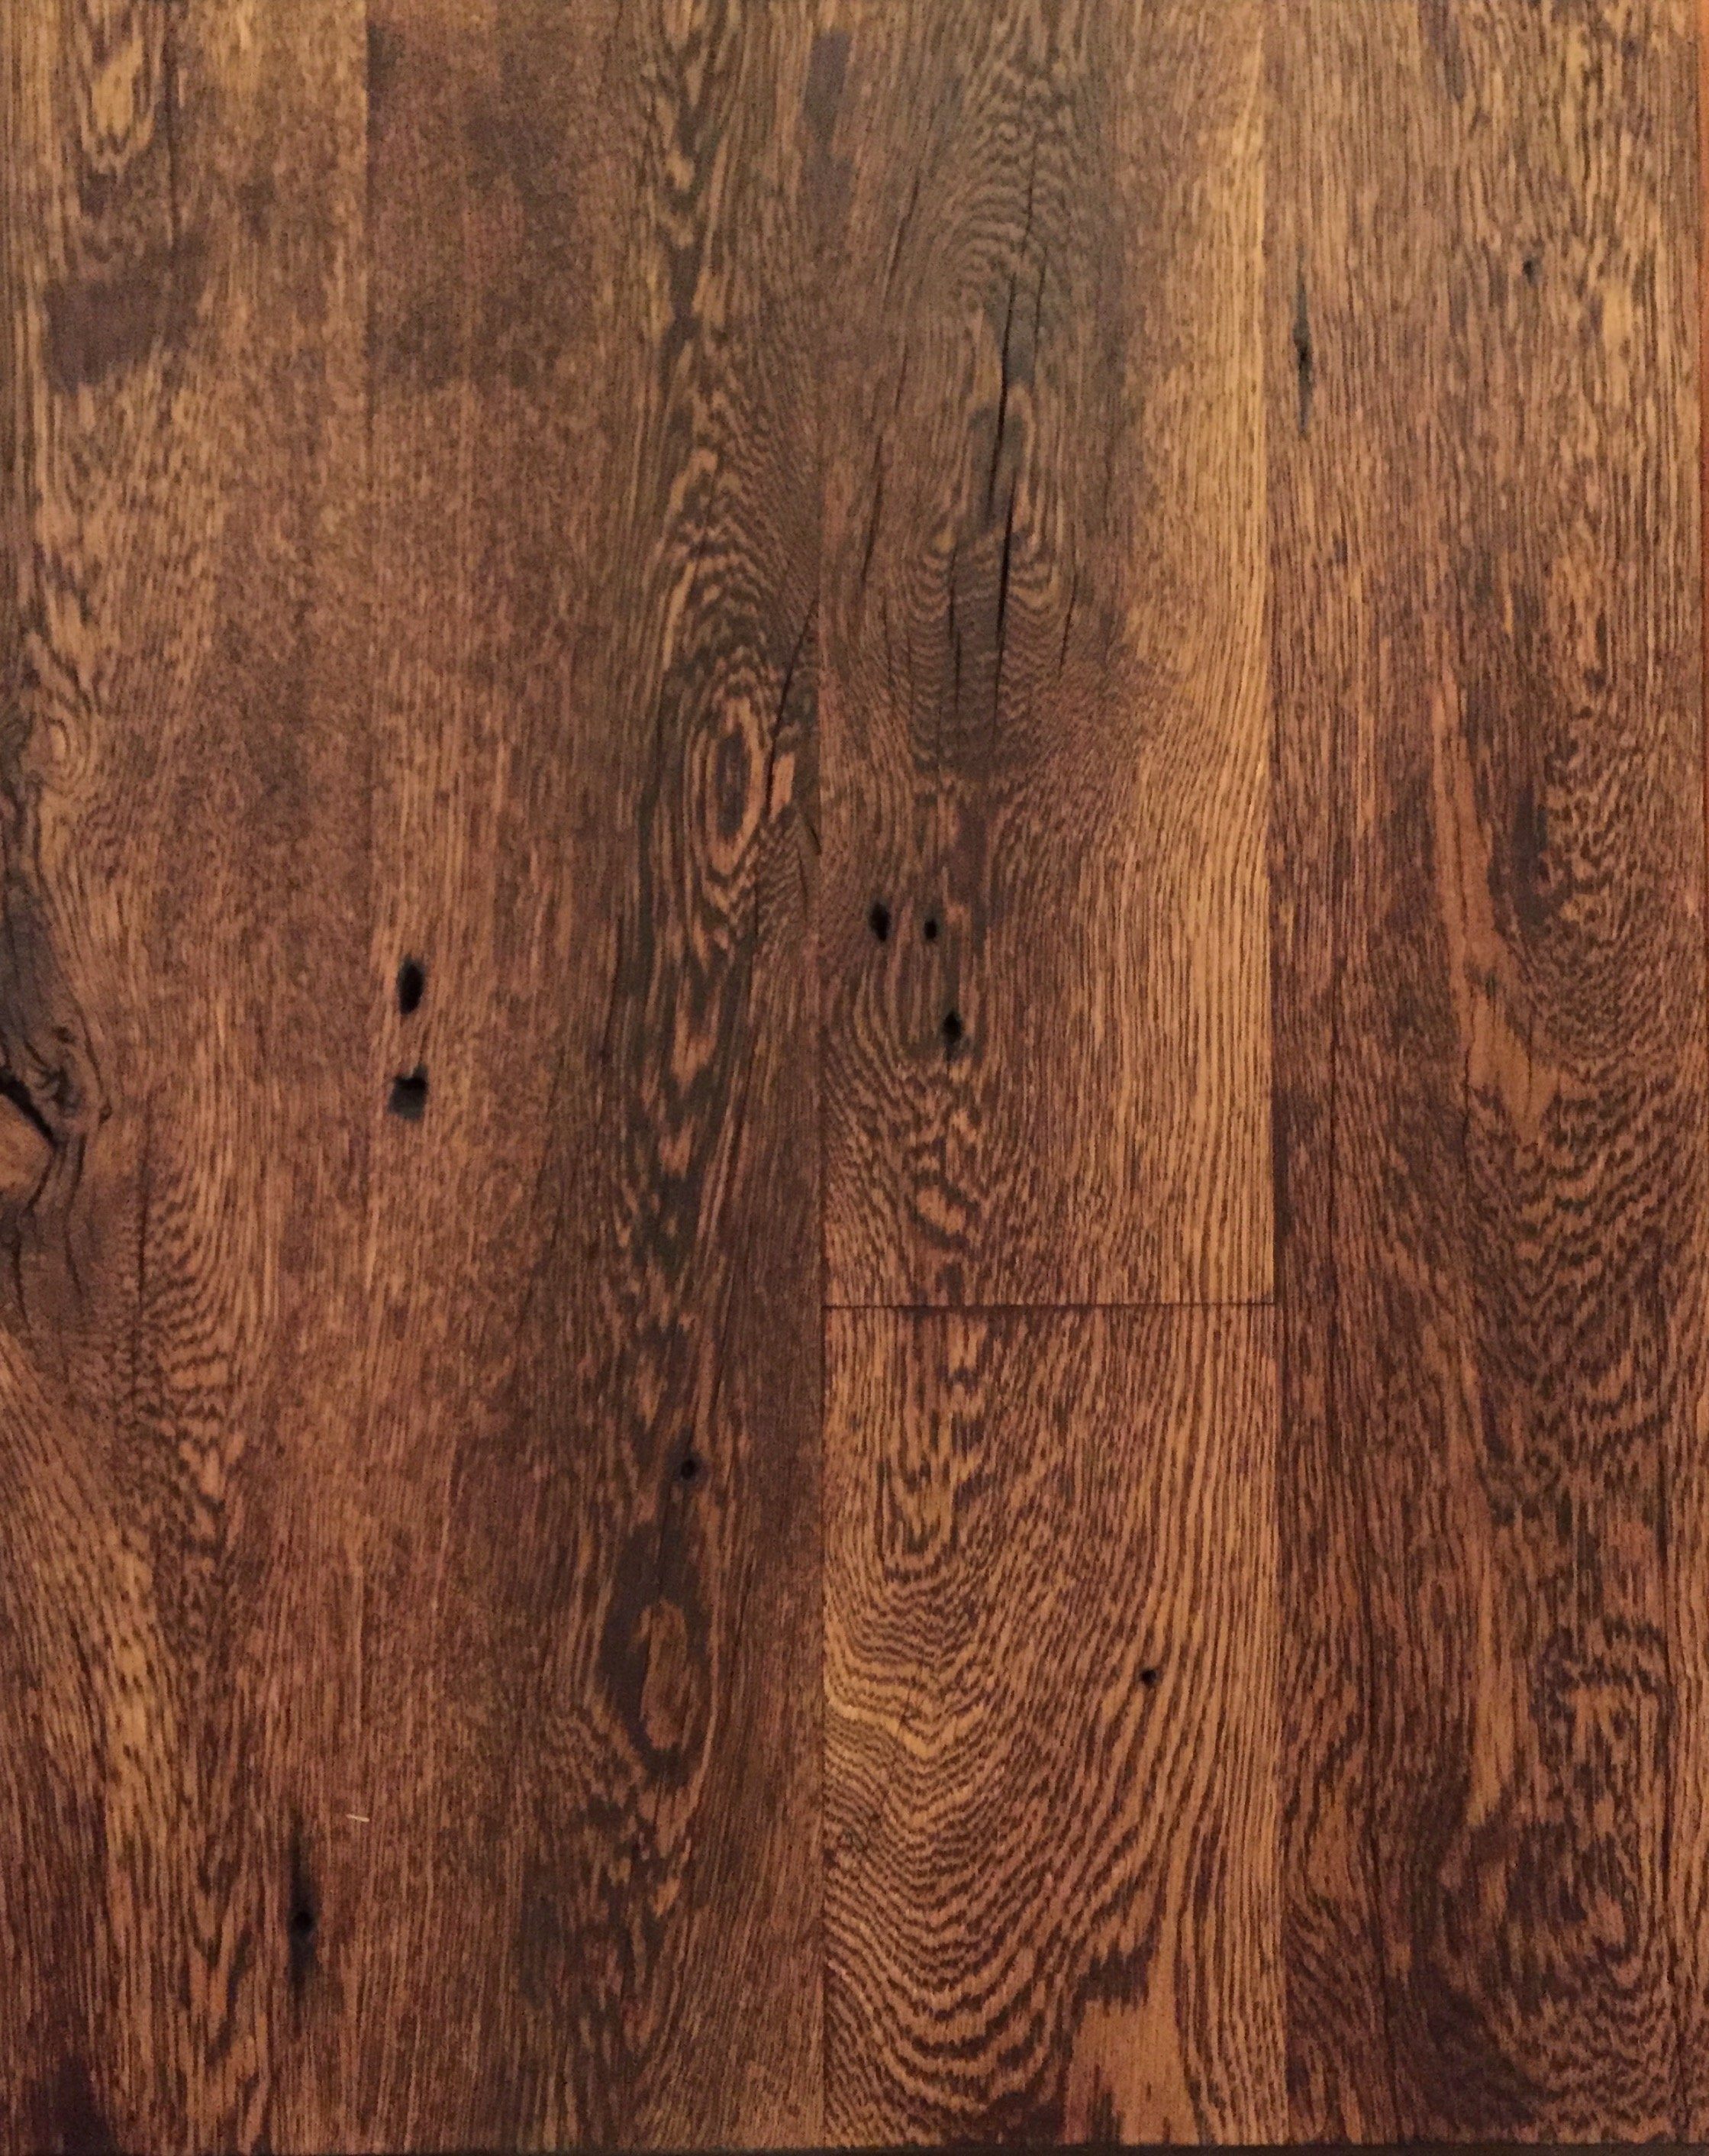 Clean faced reclaimed wood floors